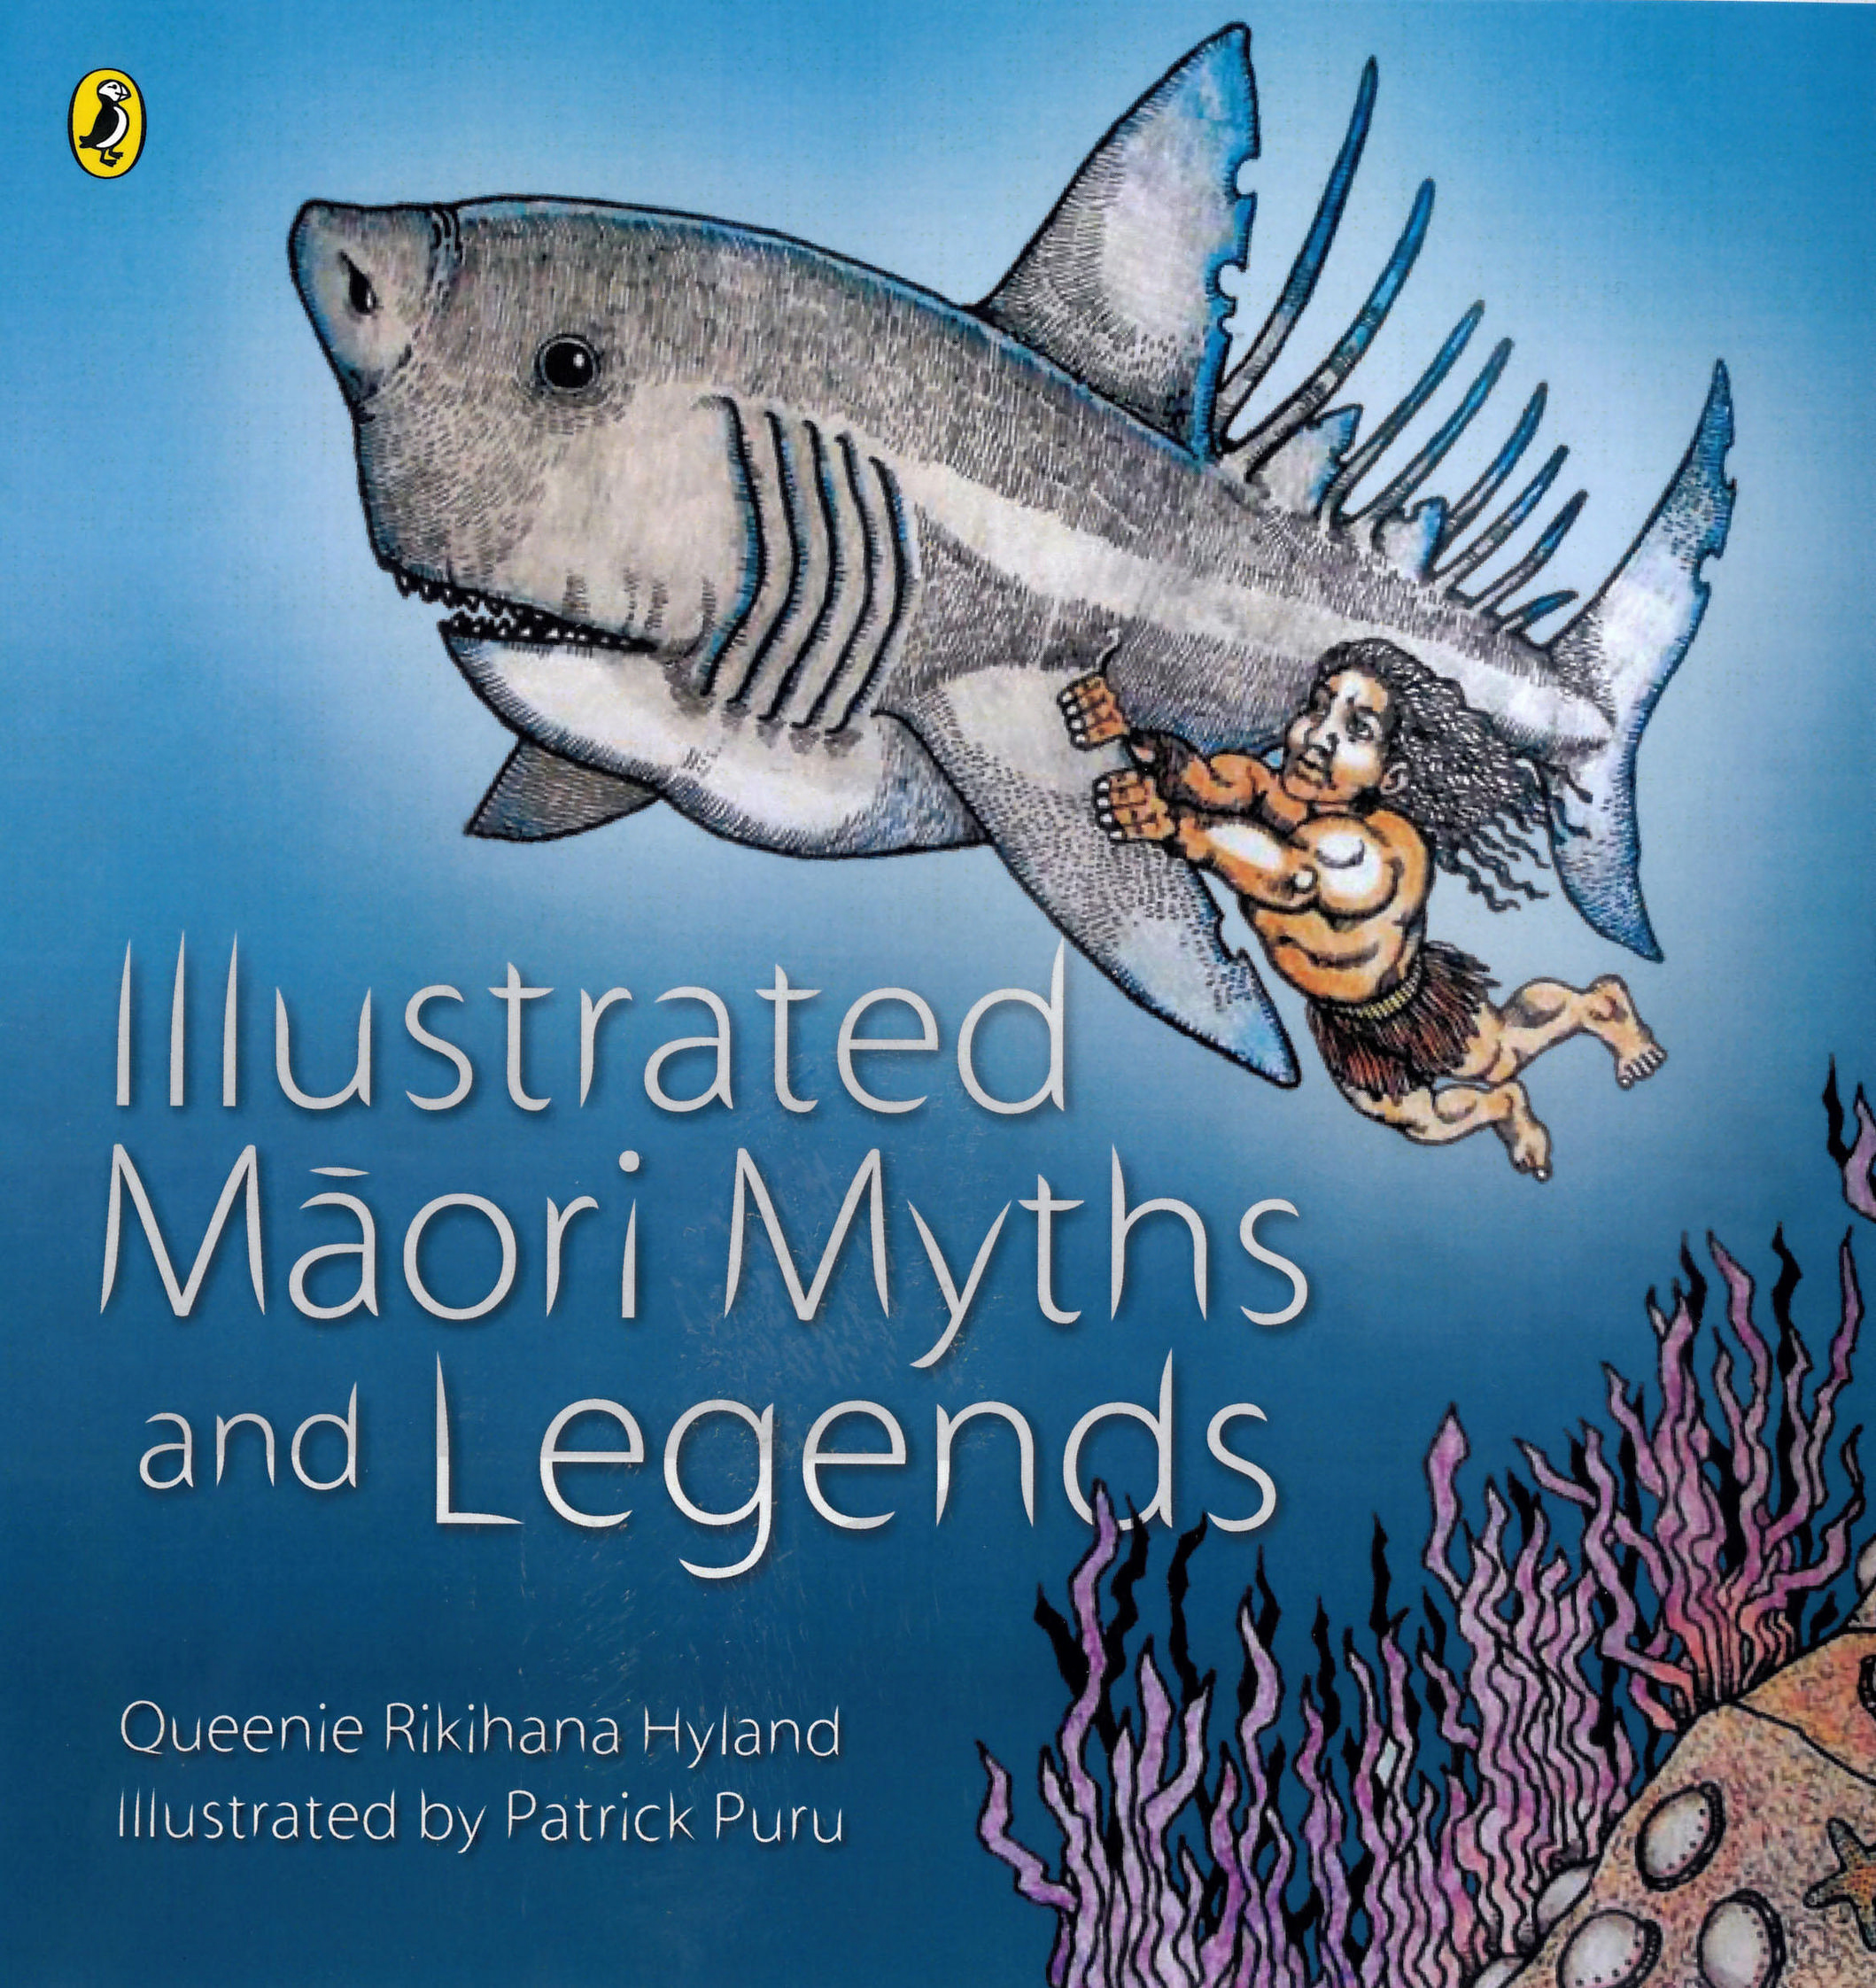 Illustrated Maori Myths and Legends